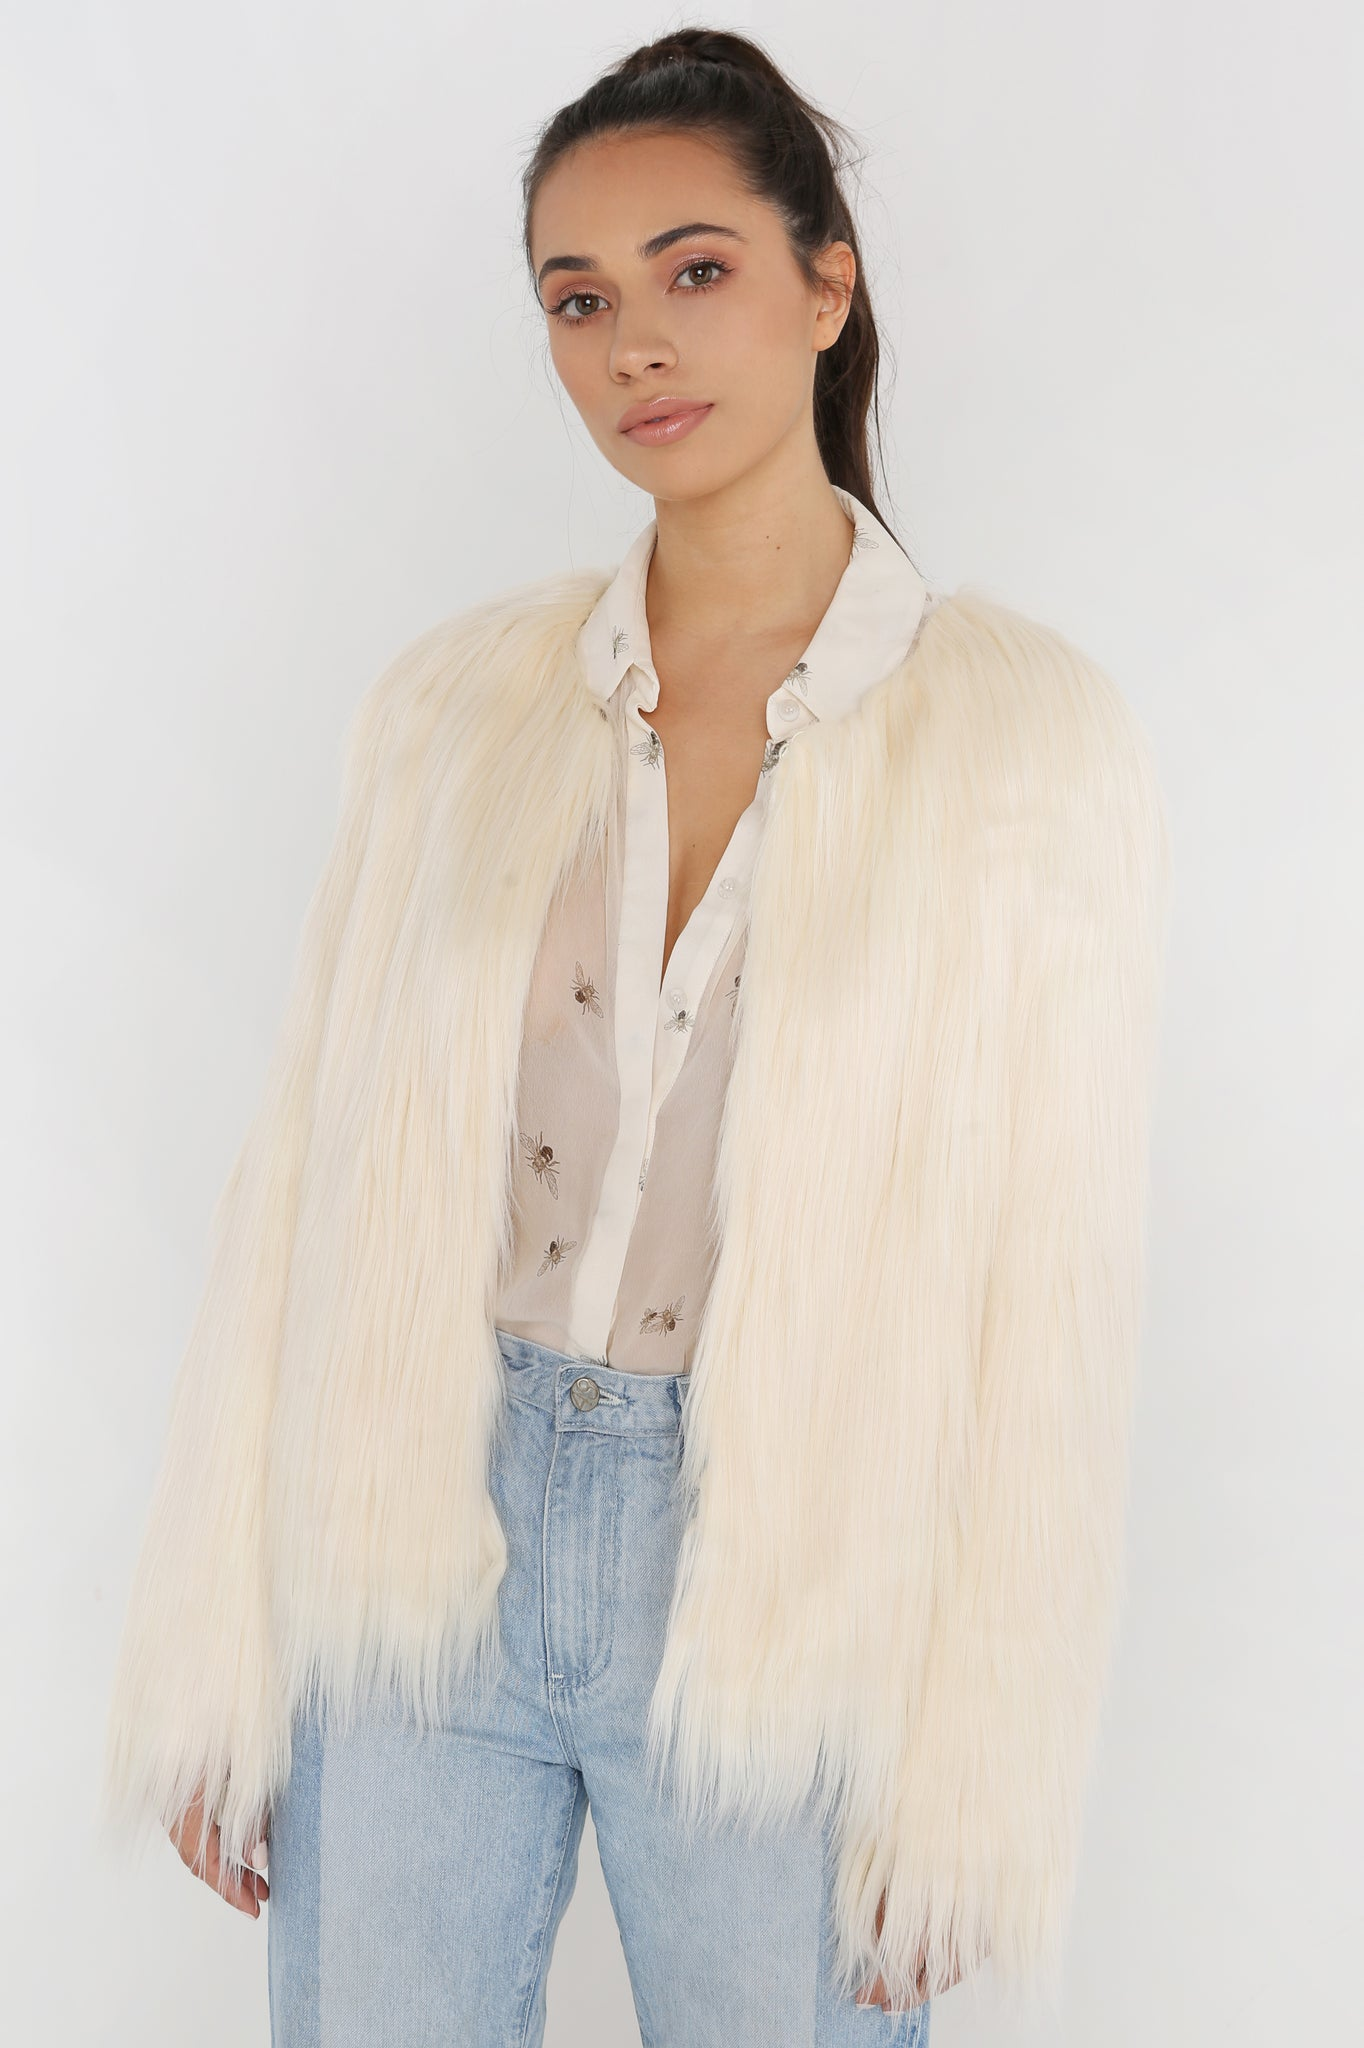 Unreal Dream Jacket in Ivory